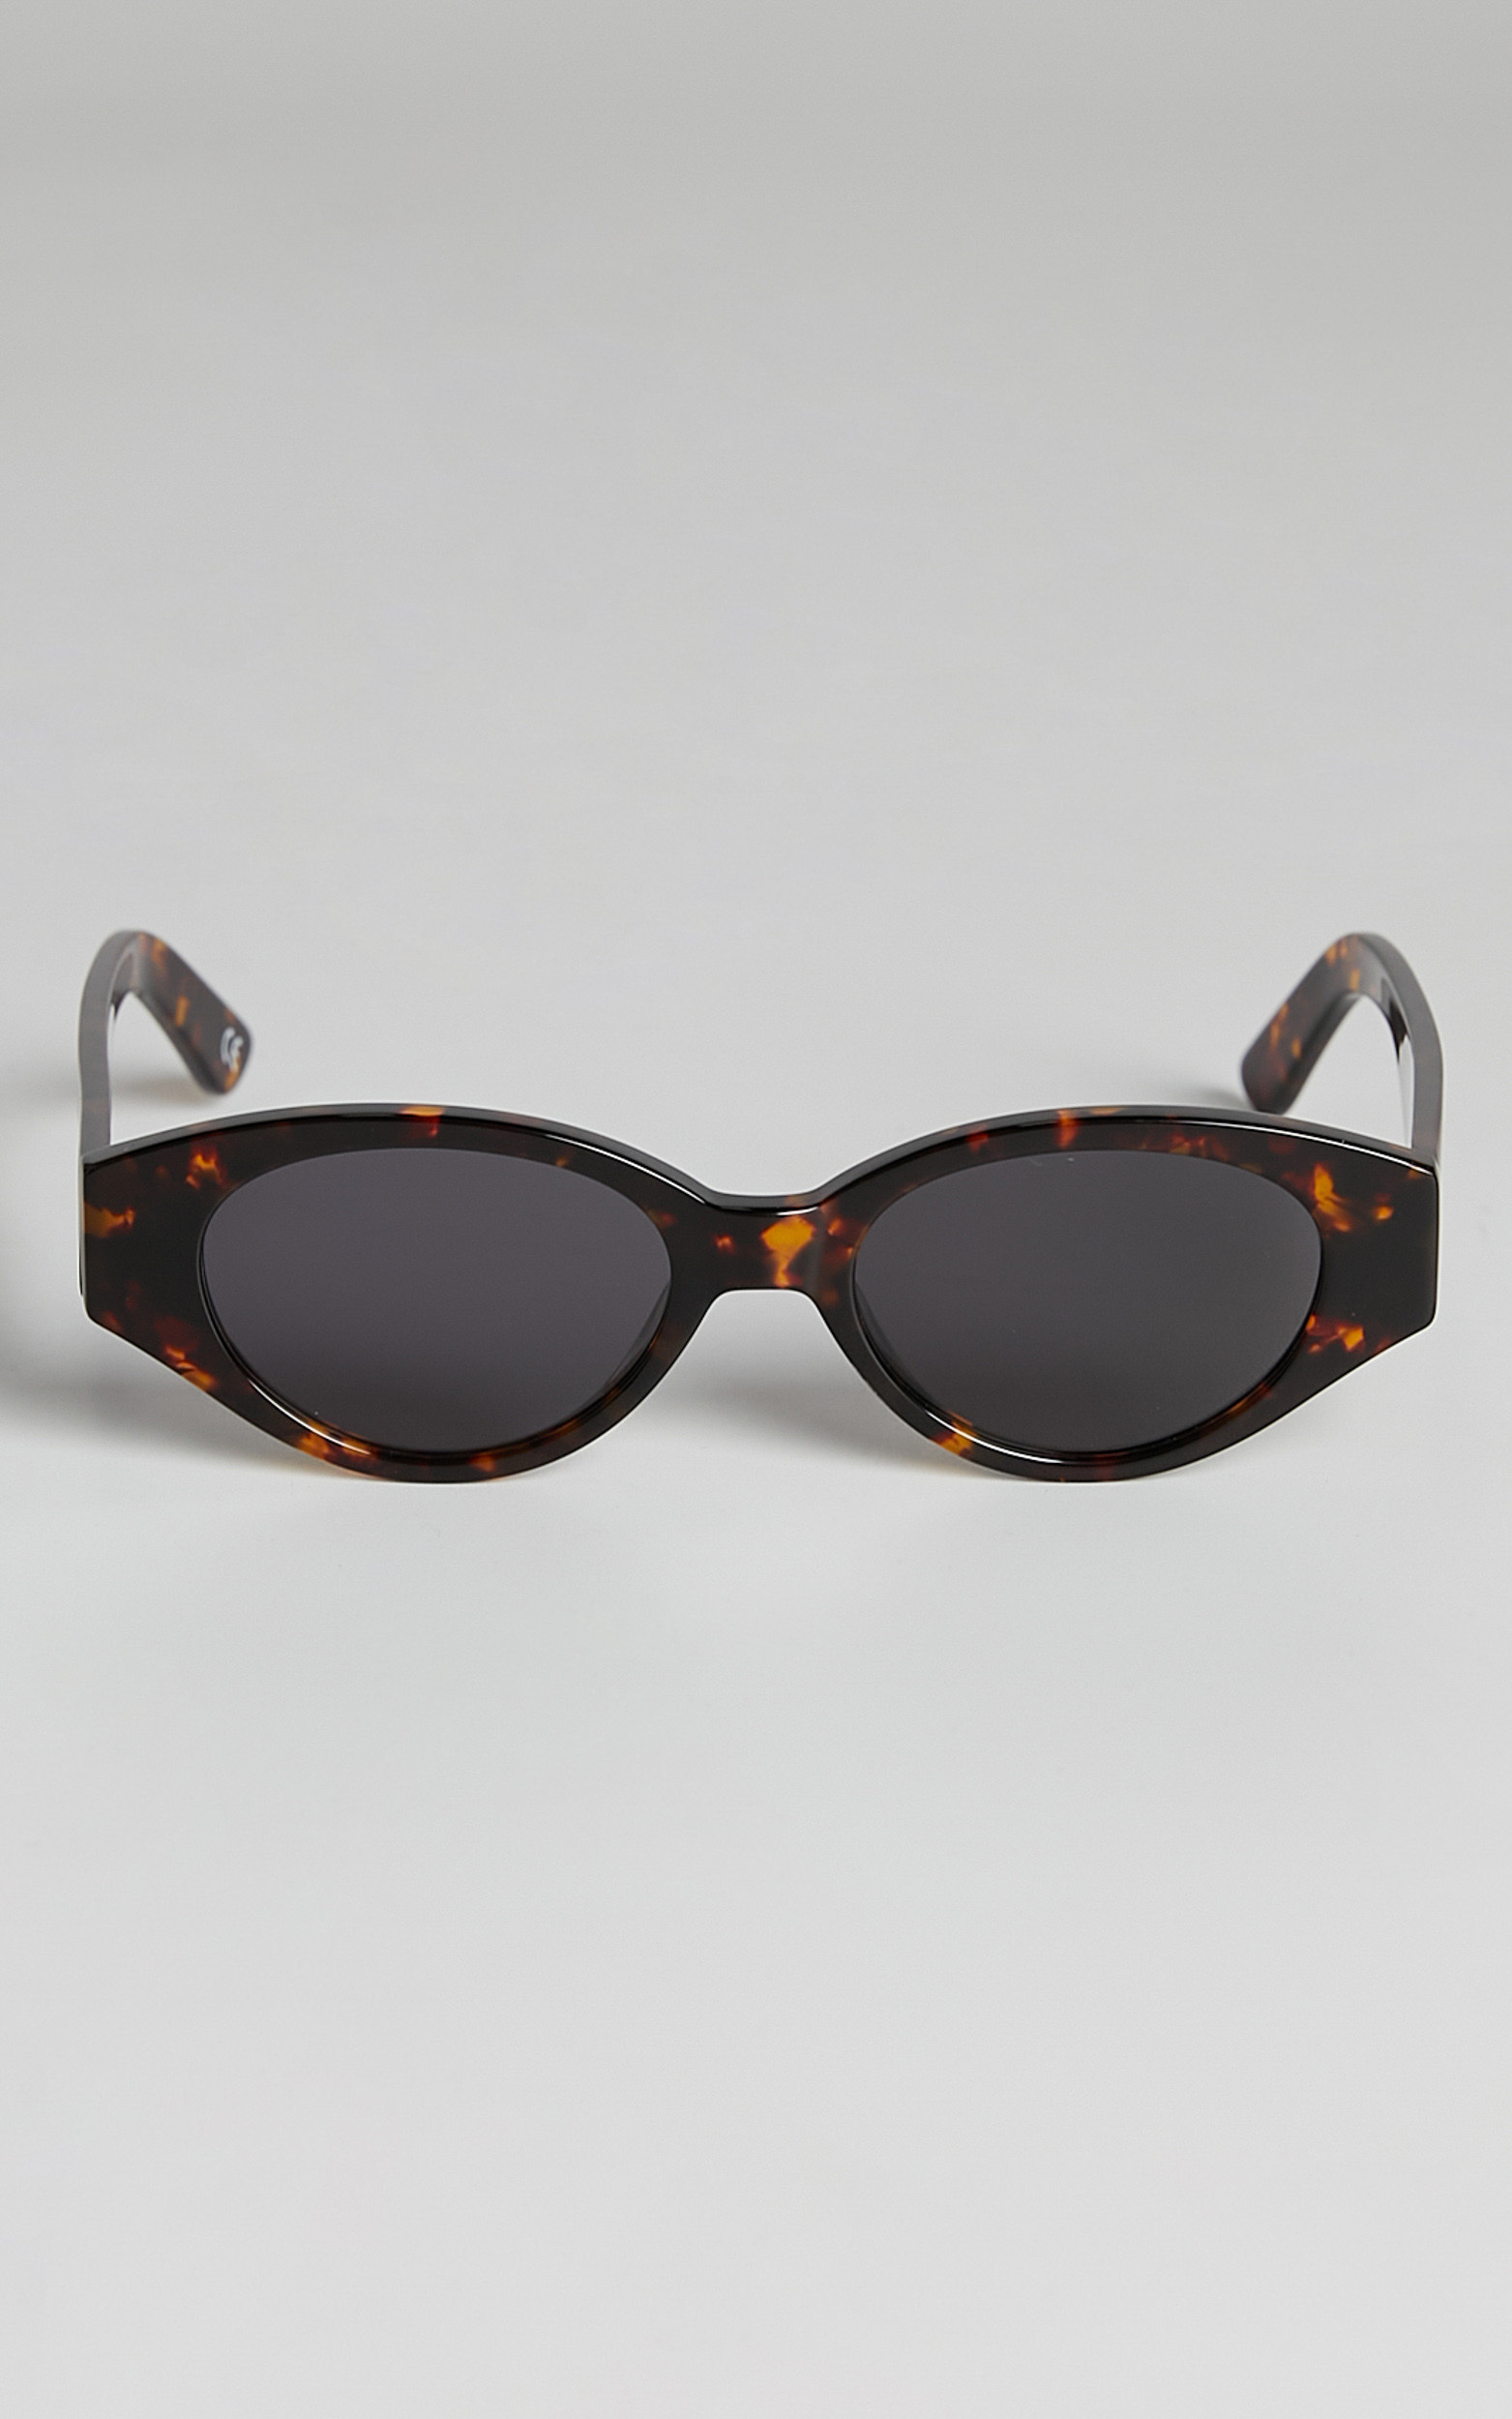 Luv Lou - The Joanie Sunglasses in Tort, BRN1, hi-res image number null